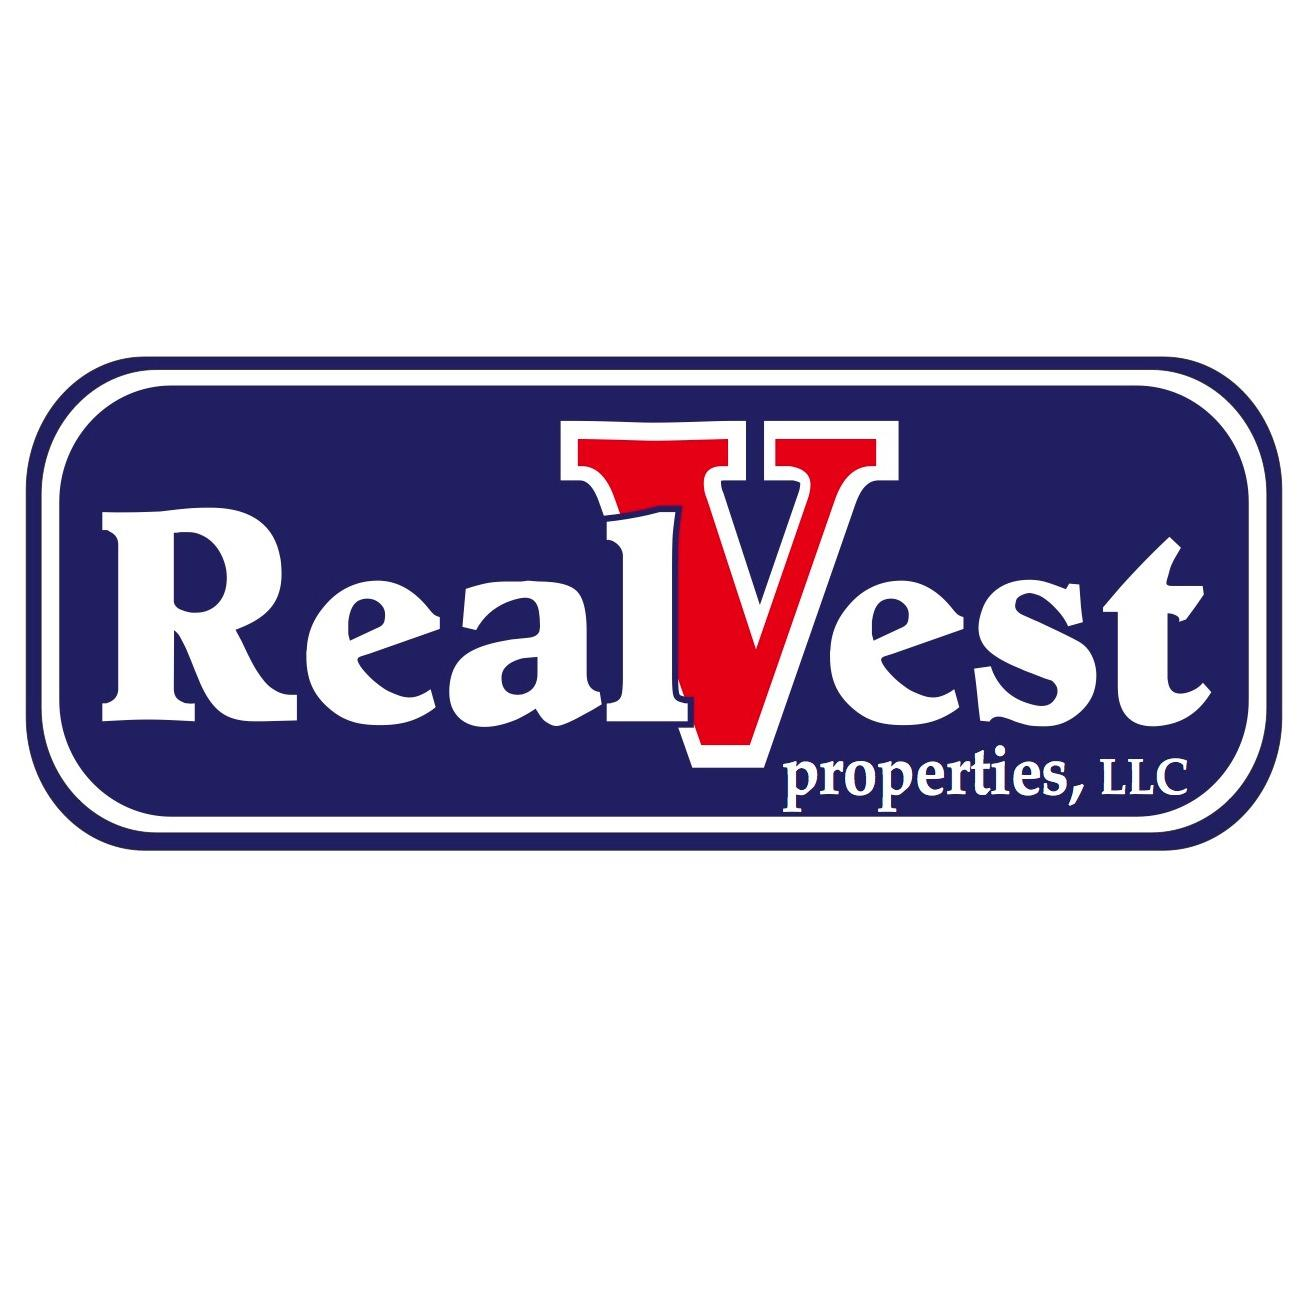 Real-Vest Properties LLC image 2